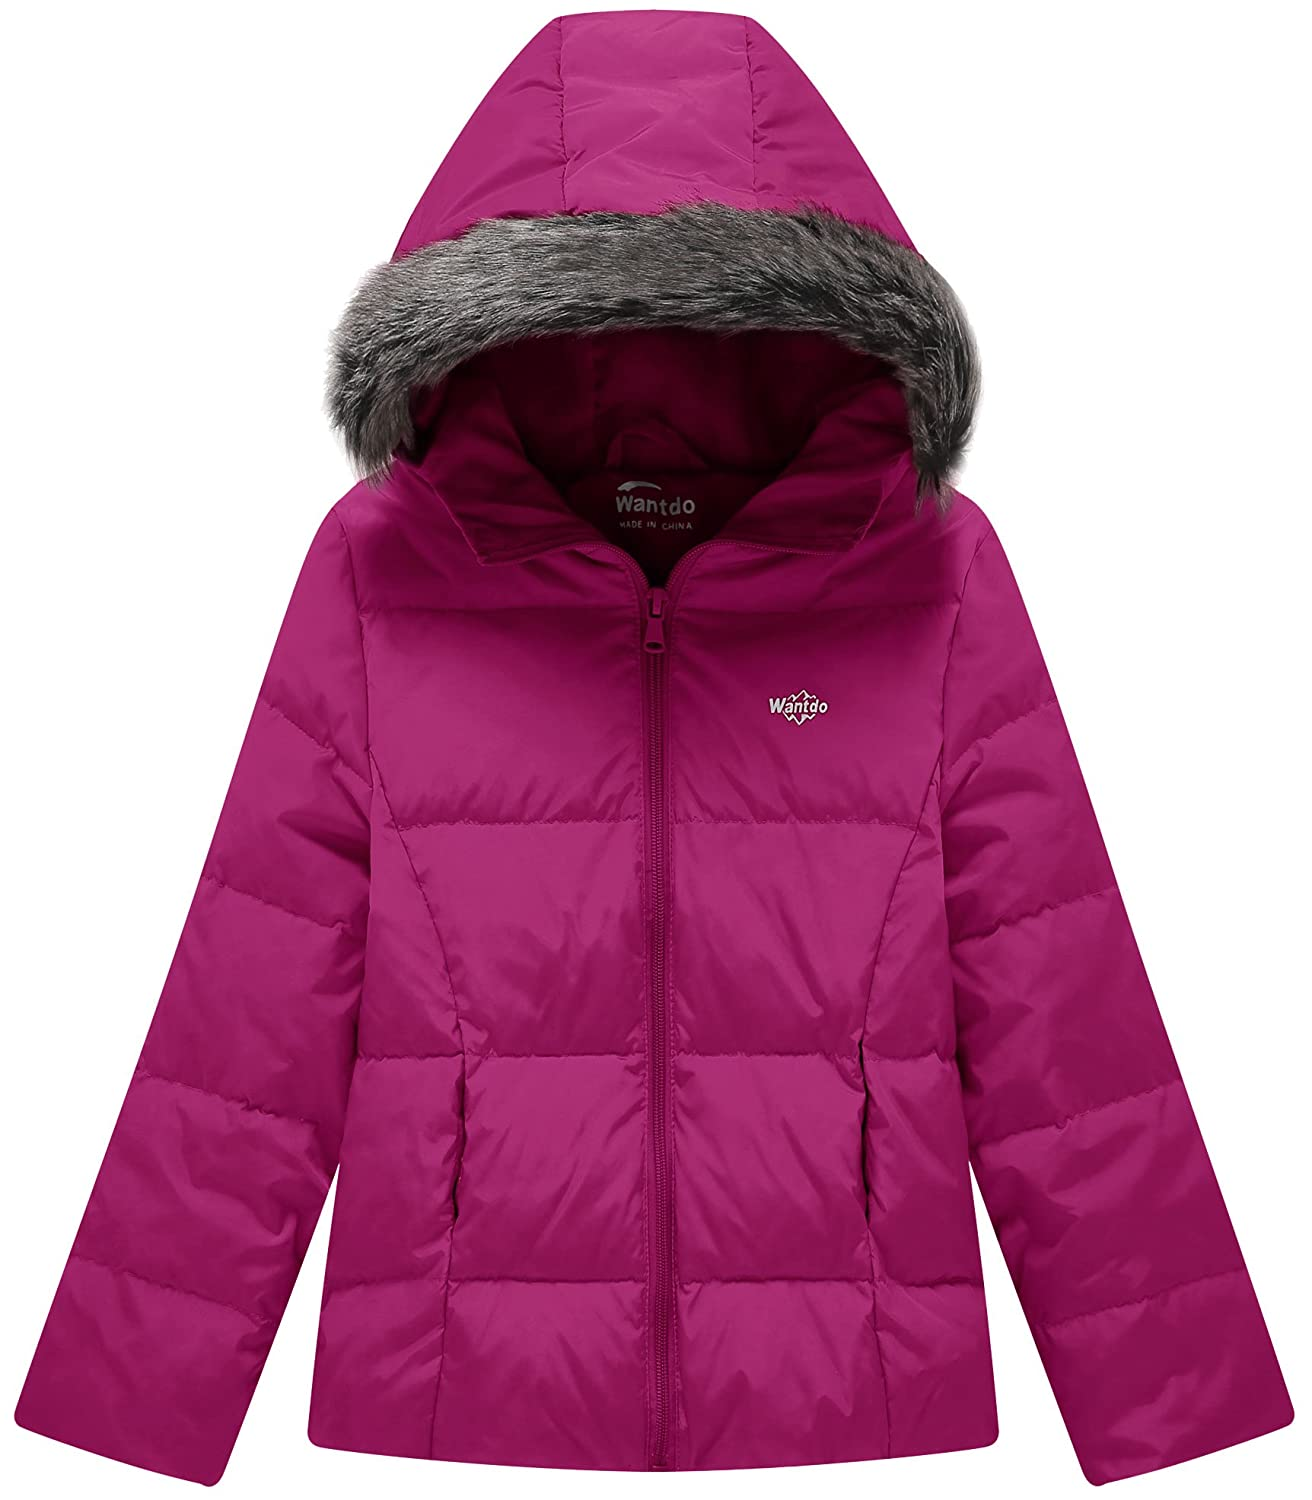 Wantdo Girl's Hooded Down Jacket Lightweight Fur Winter Coat